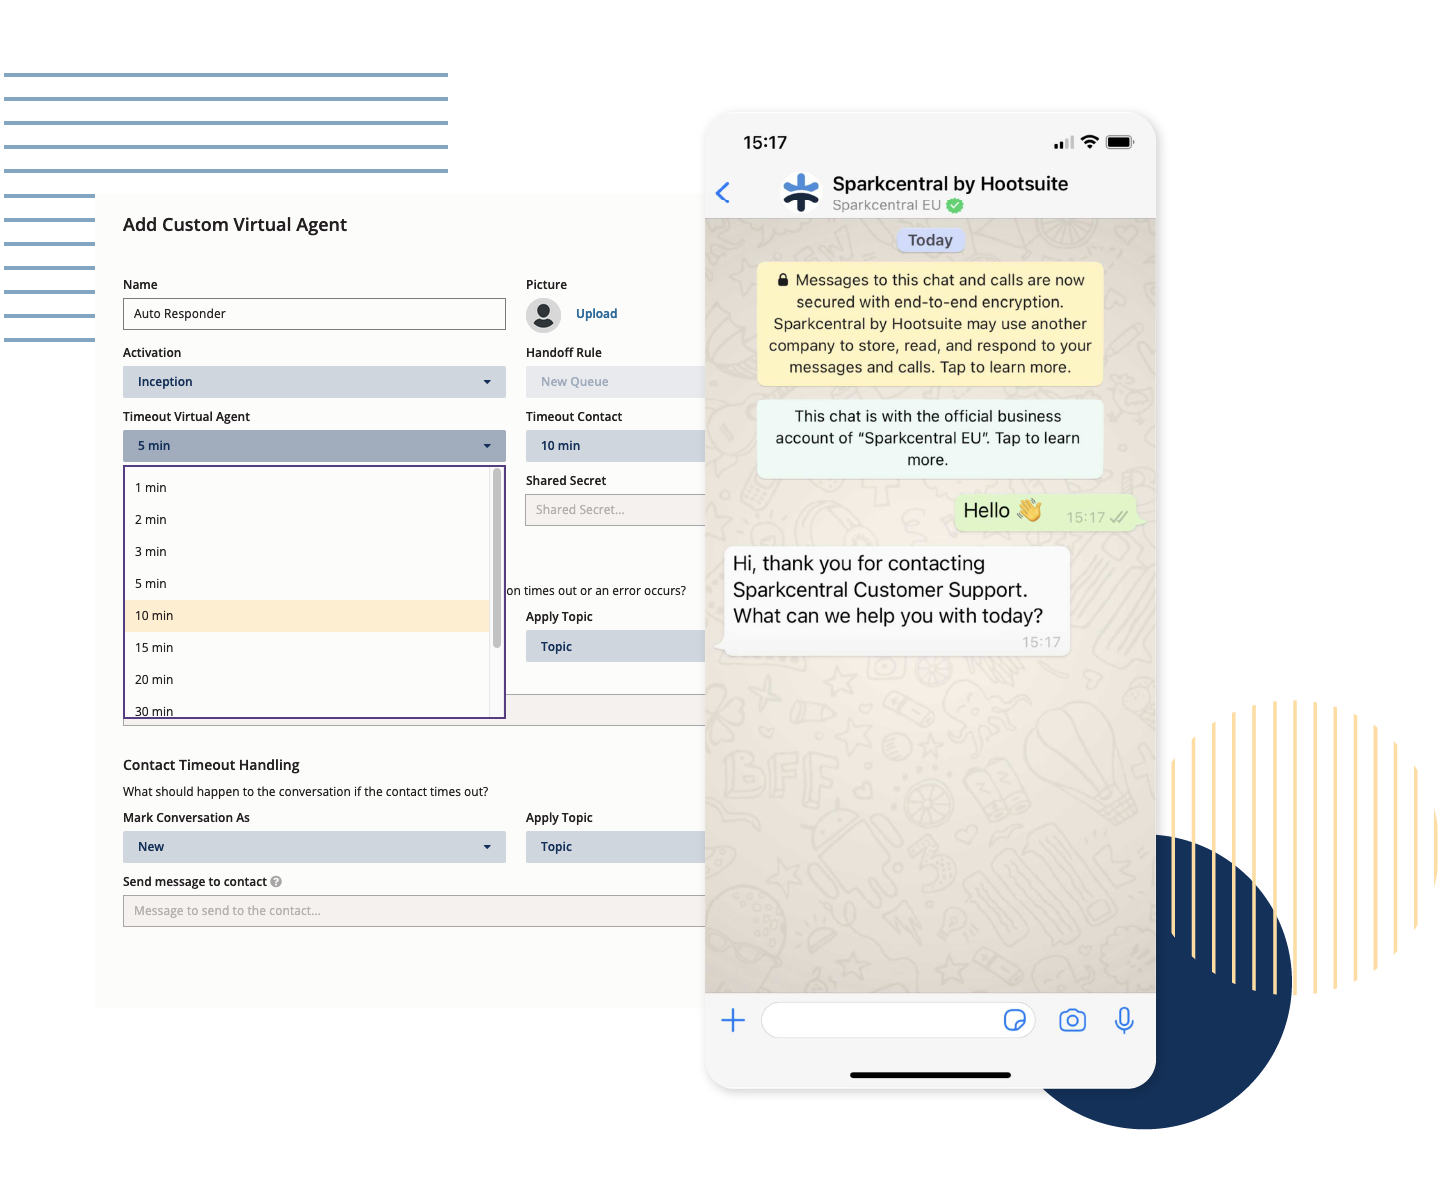 Chatbots - Leverage the same bot across different interfaces to automate engagement, quickly respond, and optimize your workflow